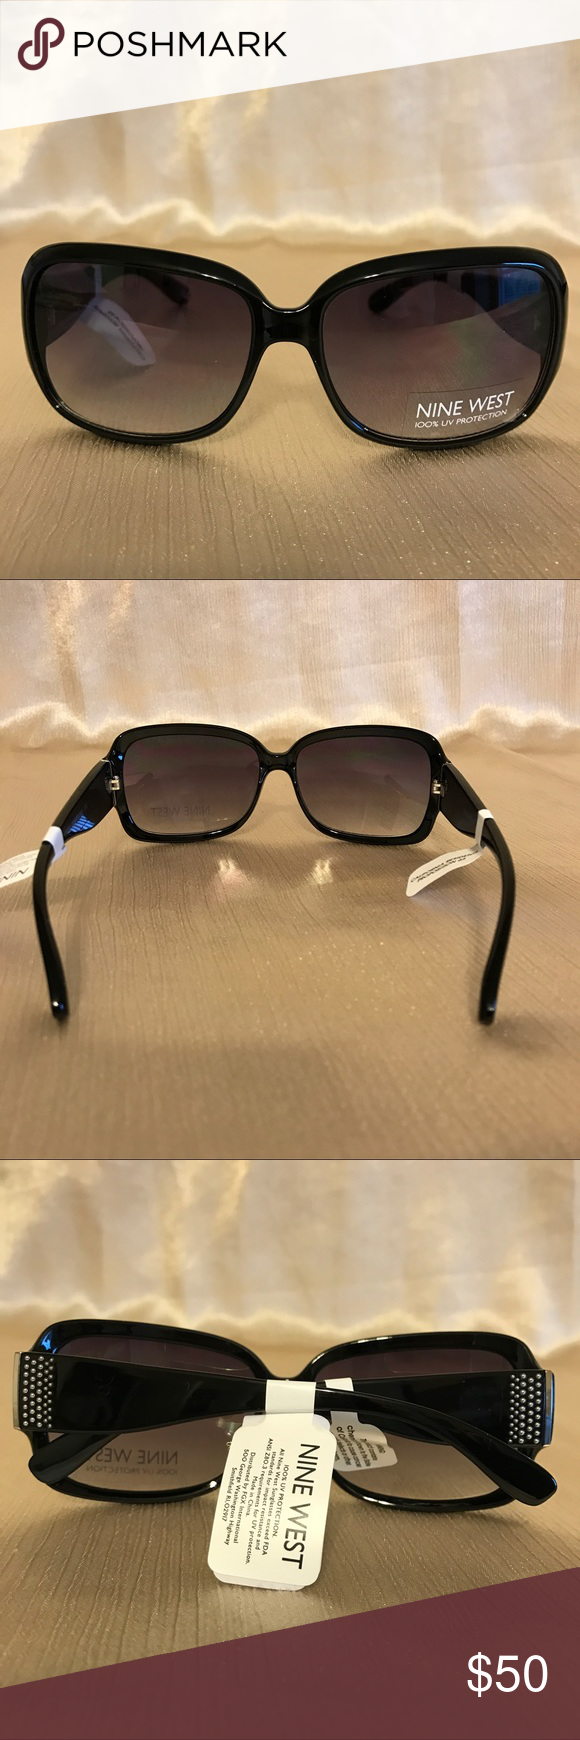 ad4c078a91 NWT NINE WEST SUNGLASSES 💯 UV PROTECTION New w  tag best to wear this  summer!100% Authentic Nine West Sunglasses.Open for your offer 😎 Nine West  ...